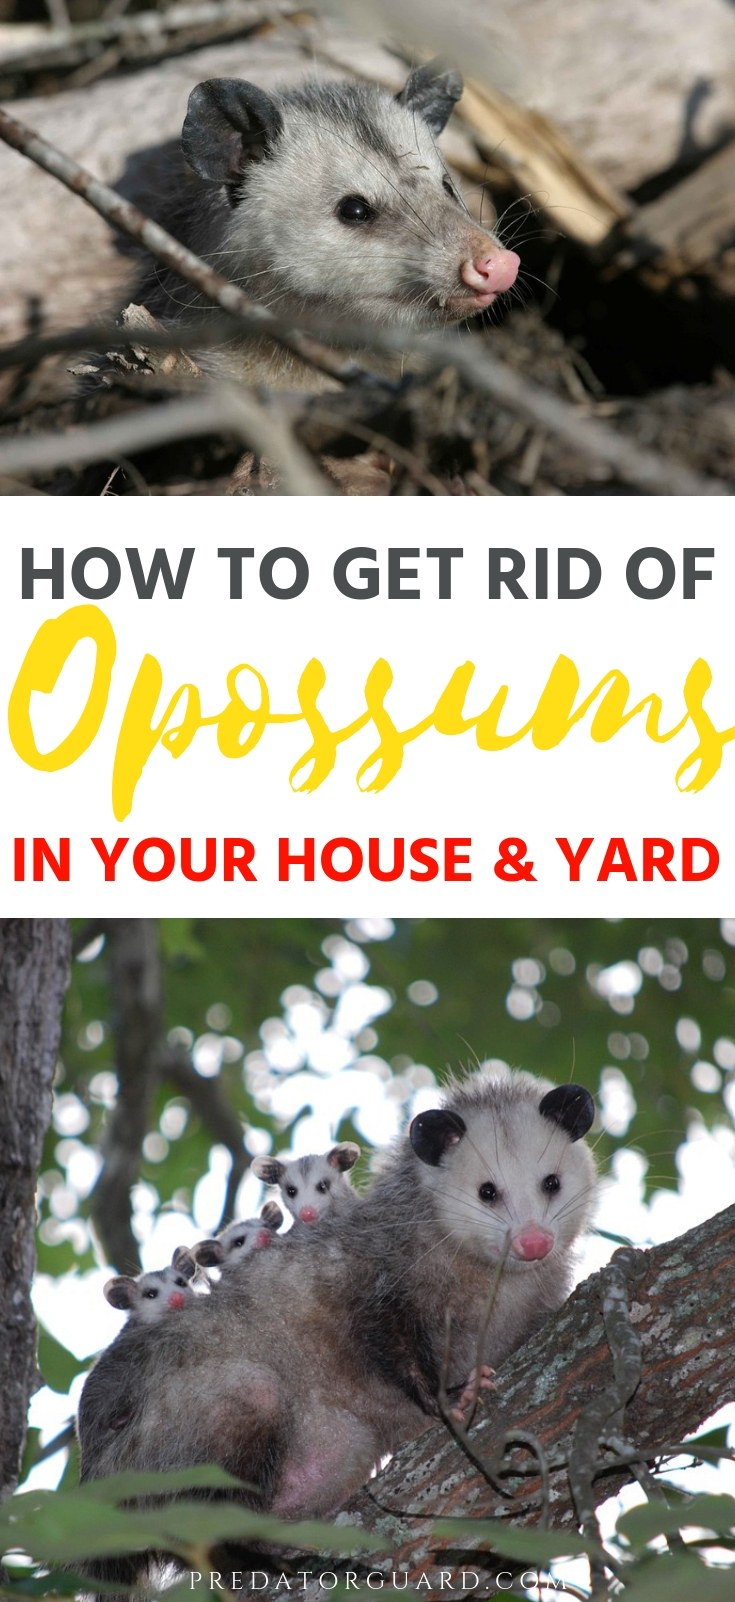 How-To-Get-Rid-of-Opossums-In-Your-House-and-Yard-Predator-Guard